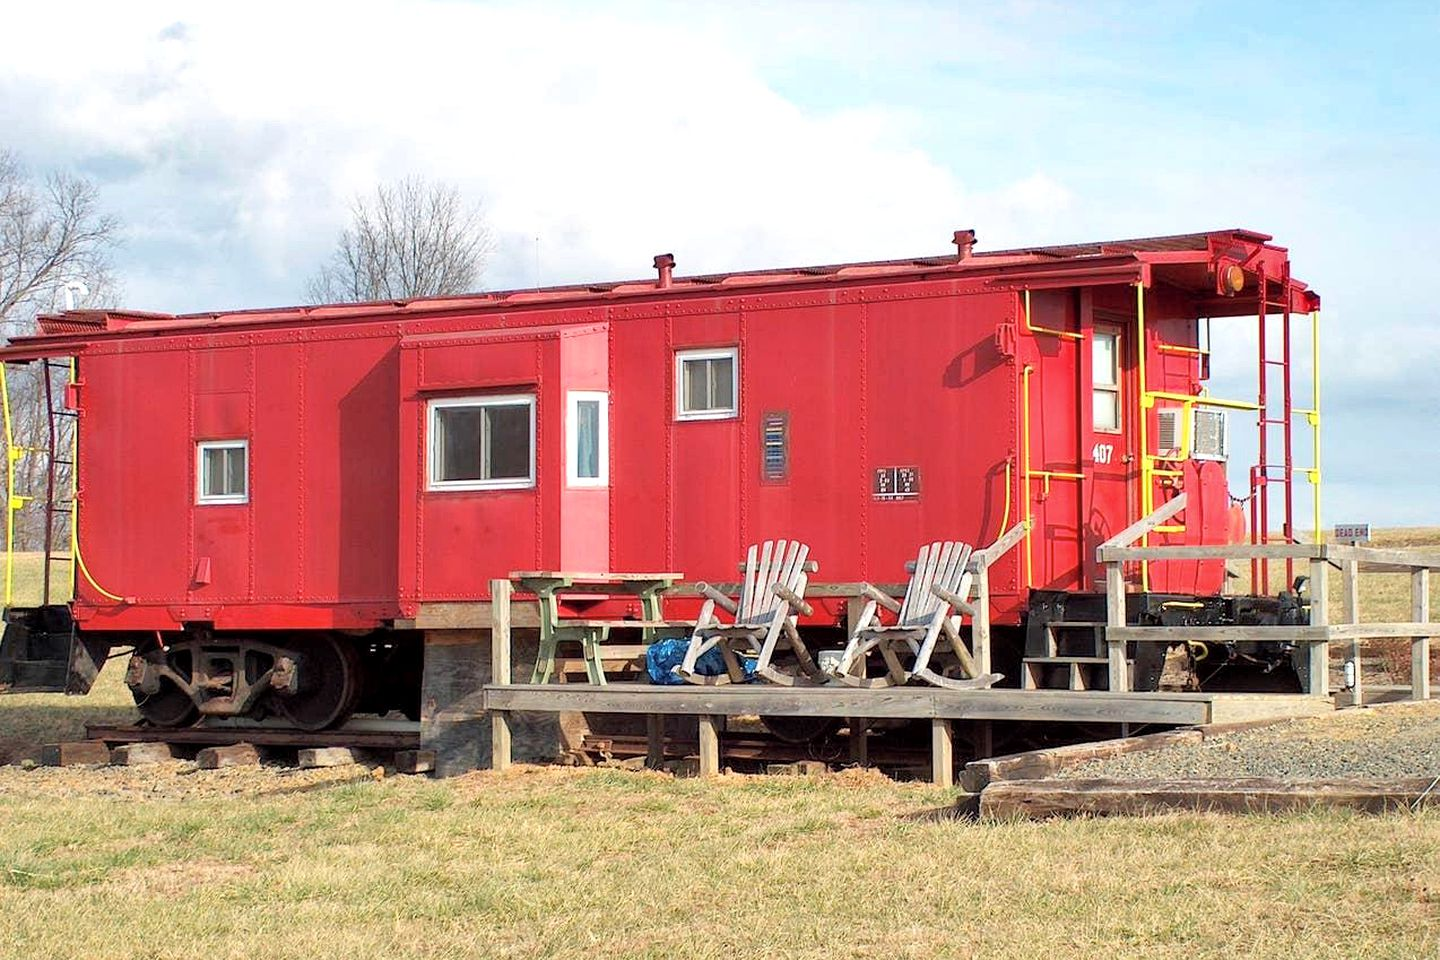 Cabooses (Fancy Gap, Virginia, United States)